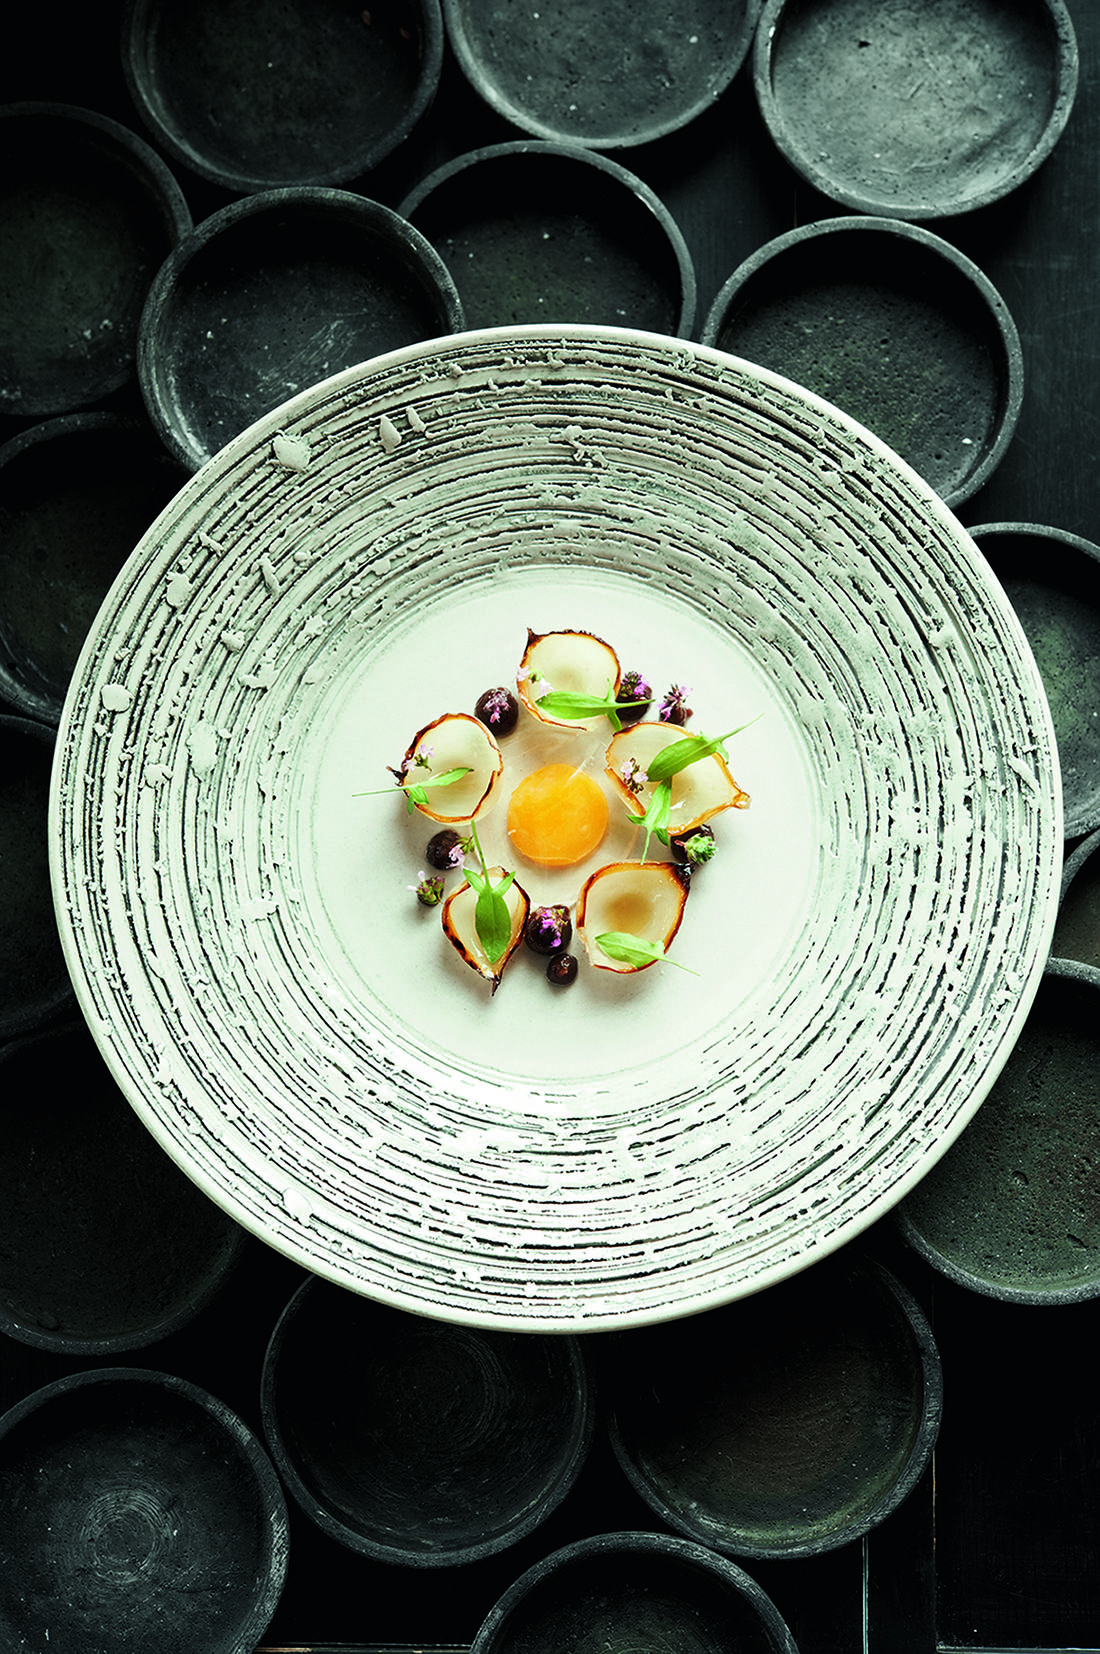 Gaggenau_Chef_Esben_Holmboe_Bang_recipe_onions and quail egg_highres